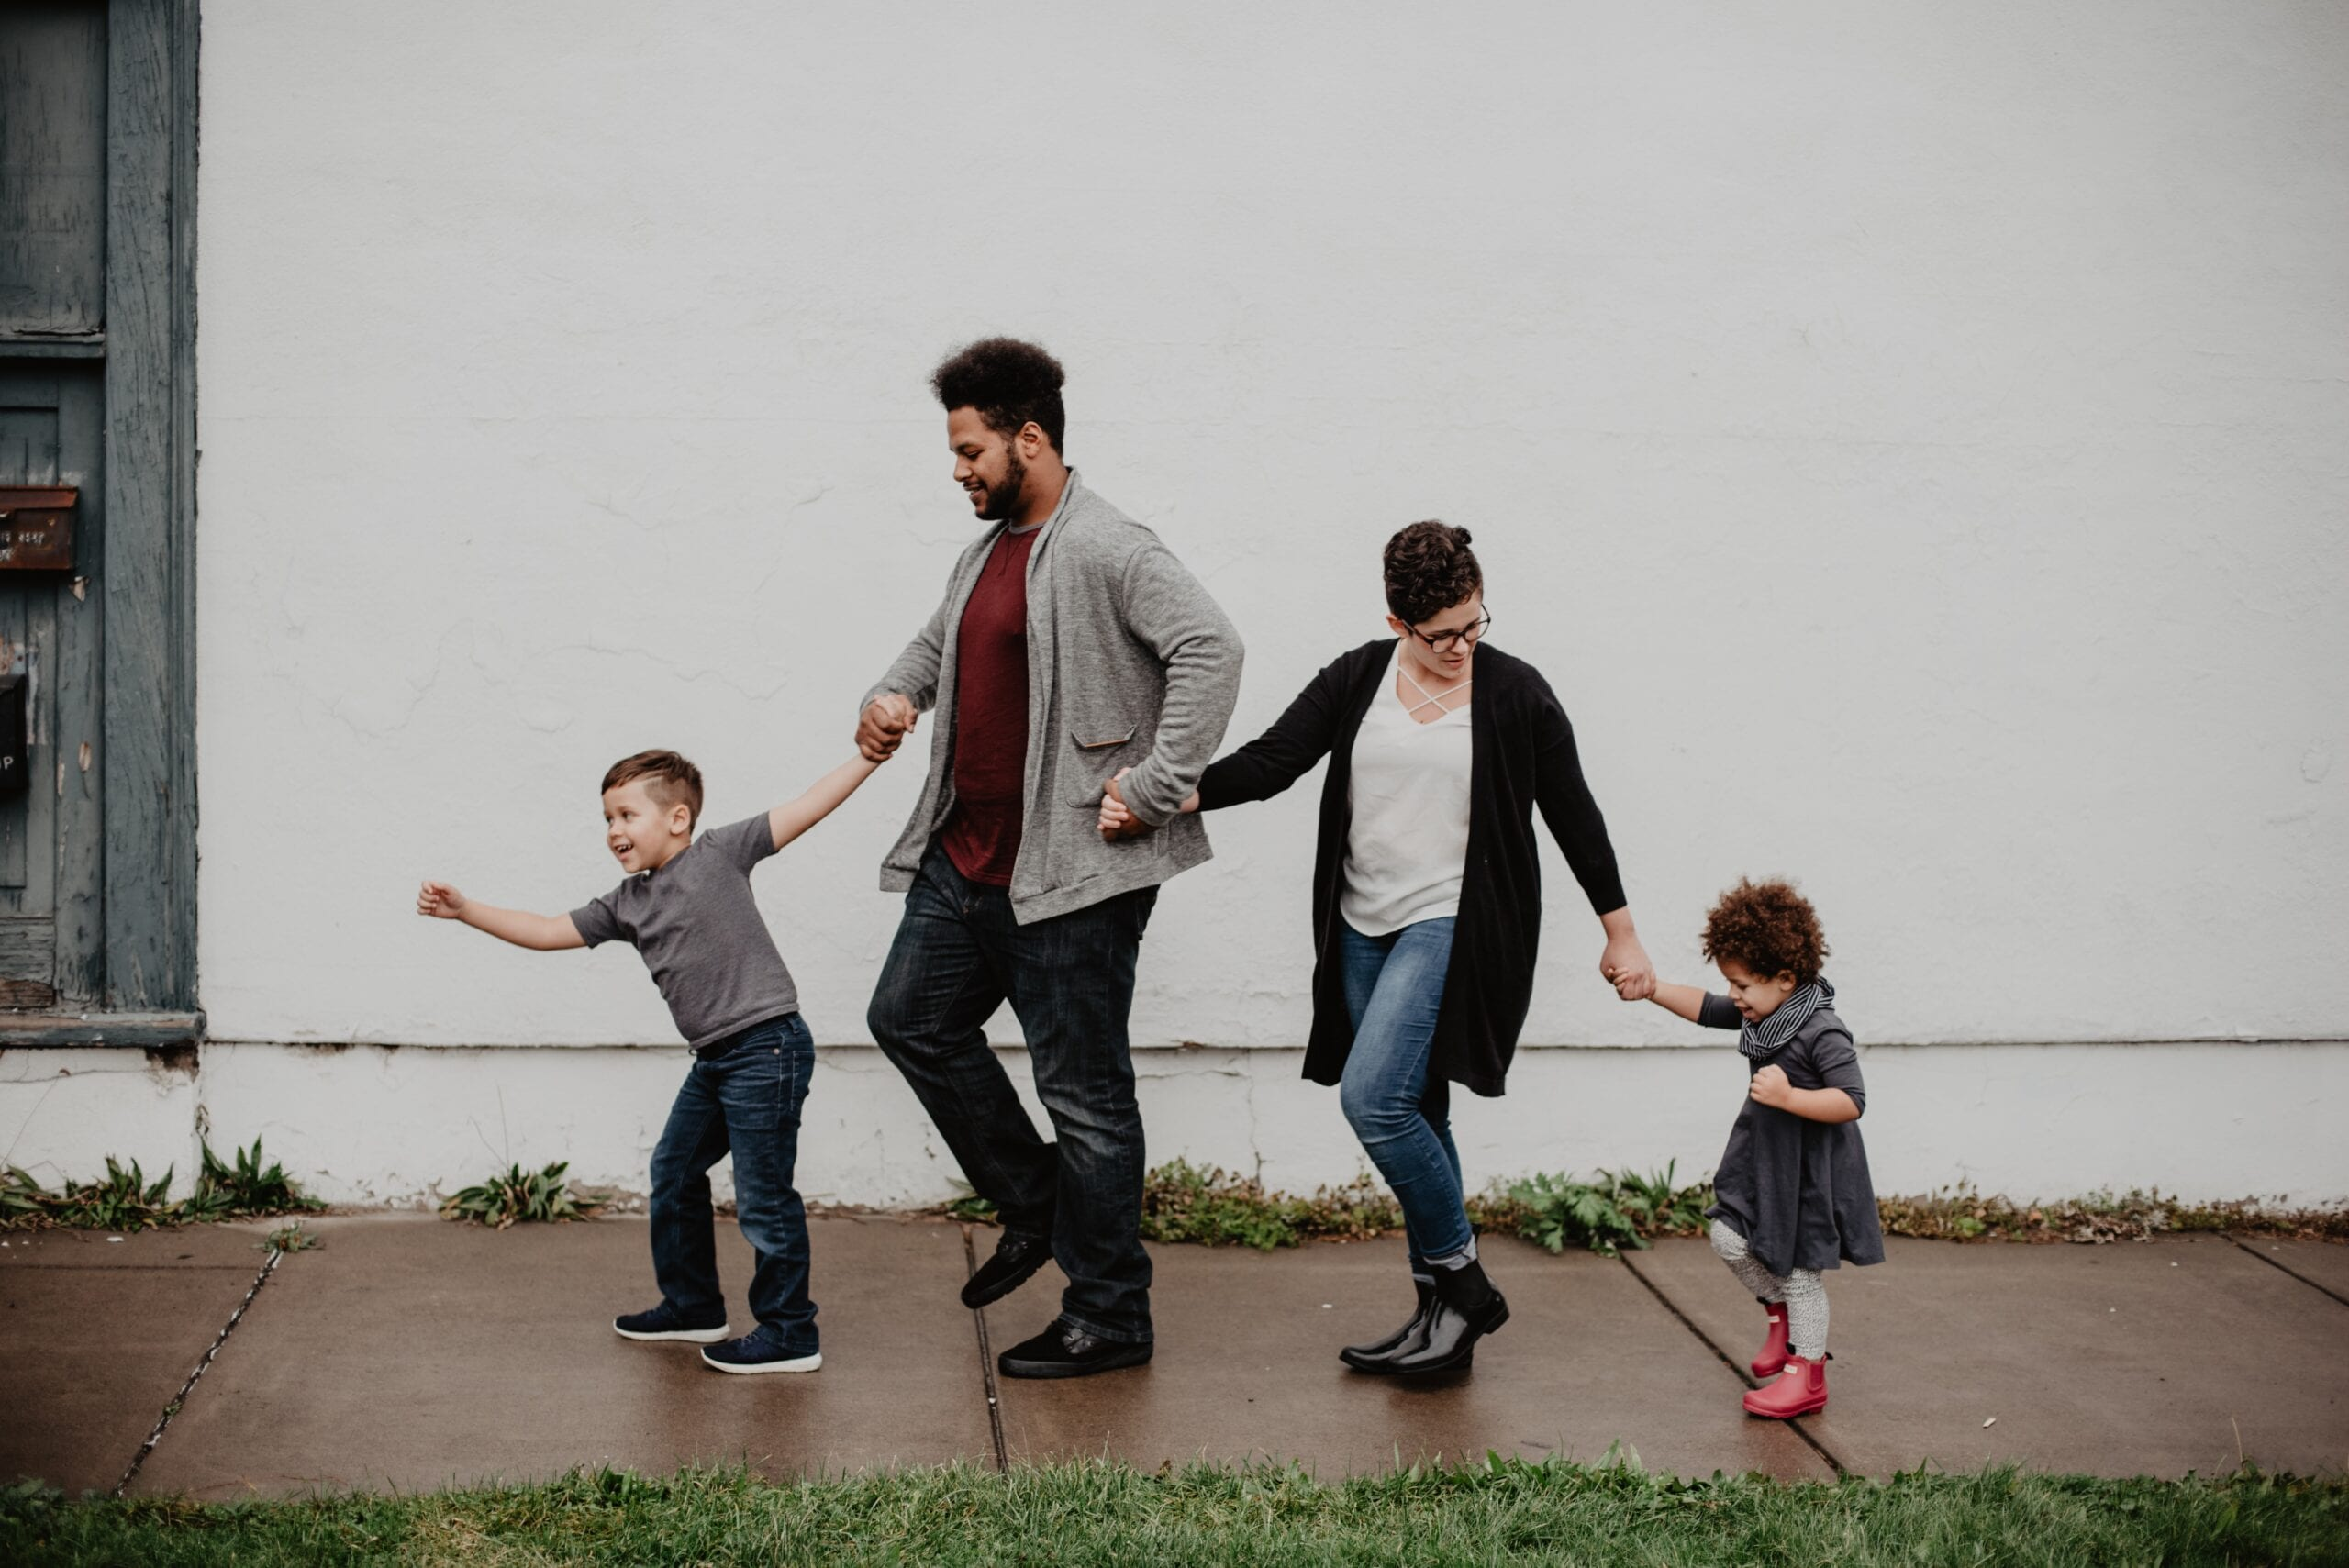 a family of people walking happily